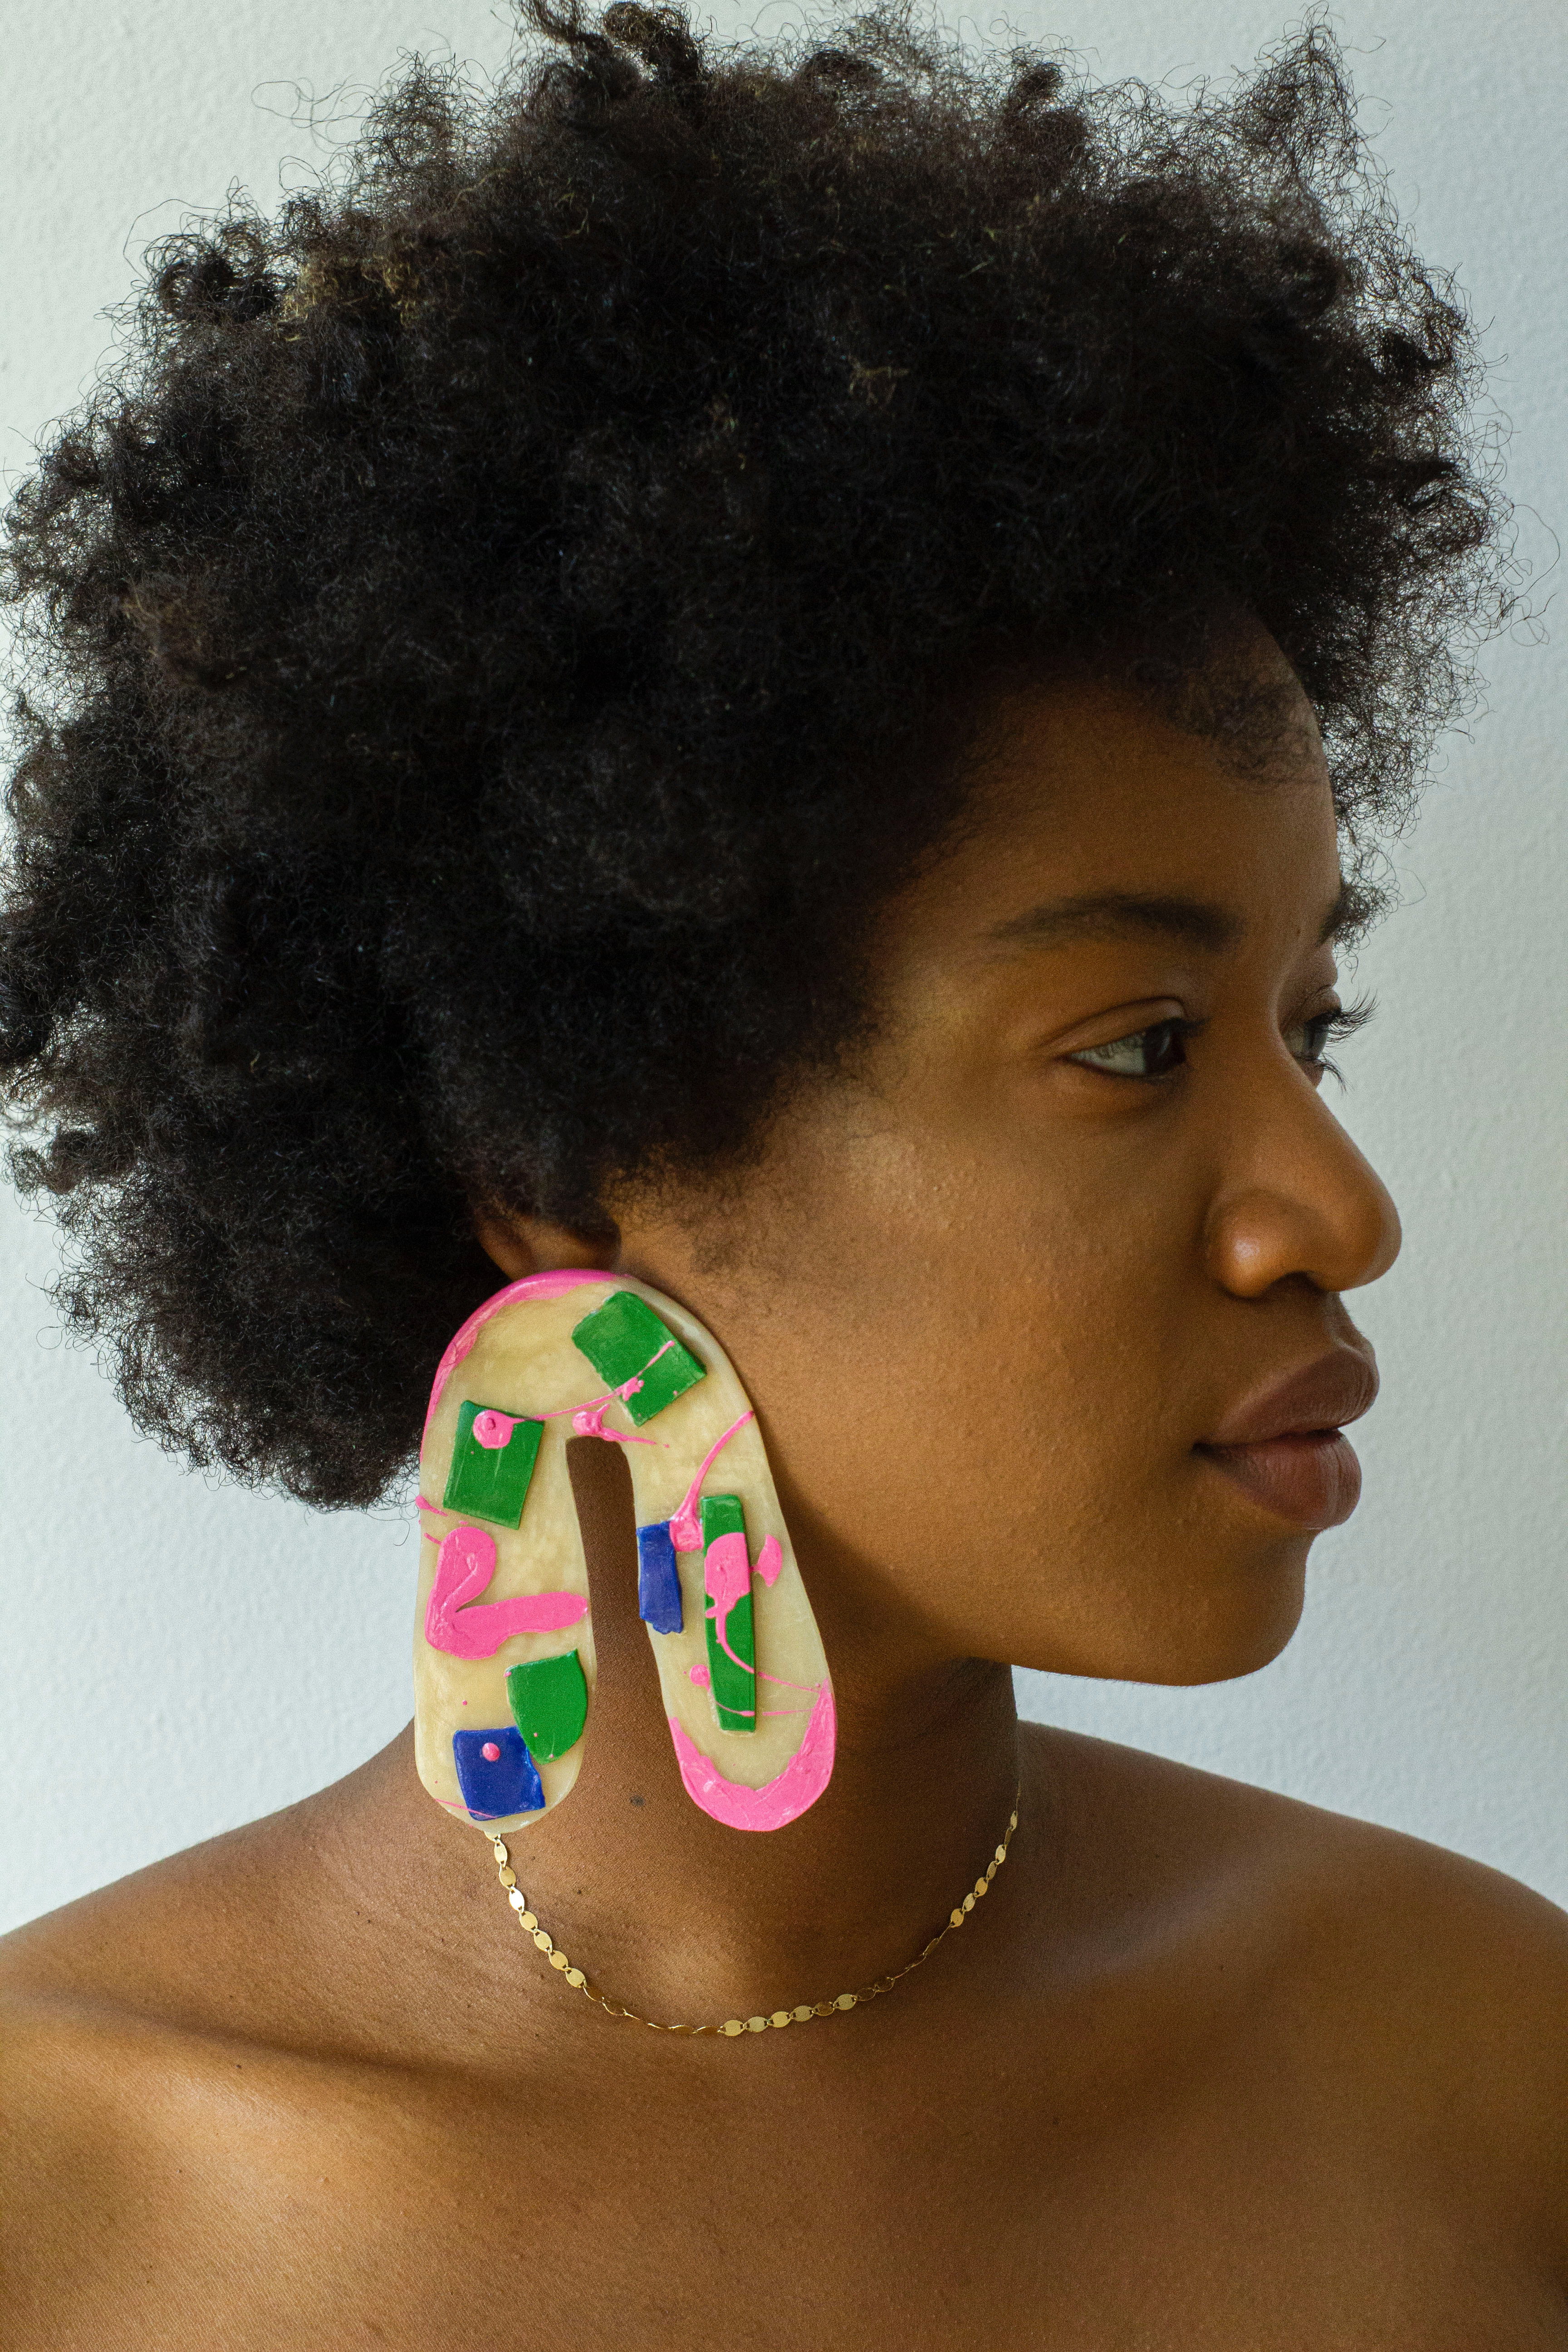 Close up portrait of Jaylan Rose, wearing big arch shaped earrings that are beige, pink, blue, and green.